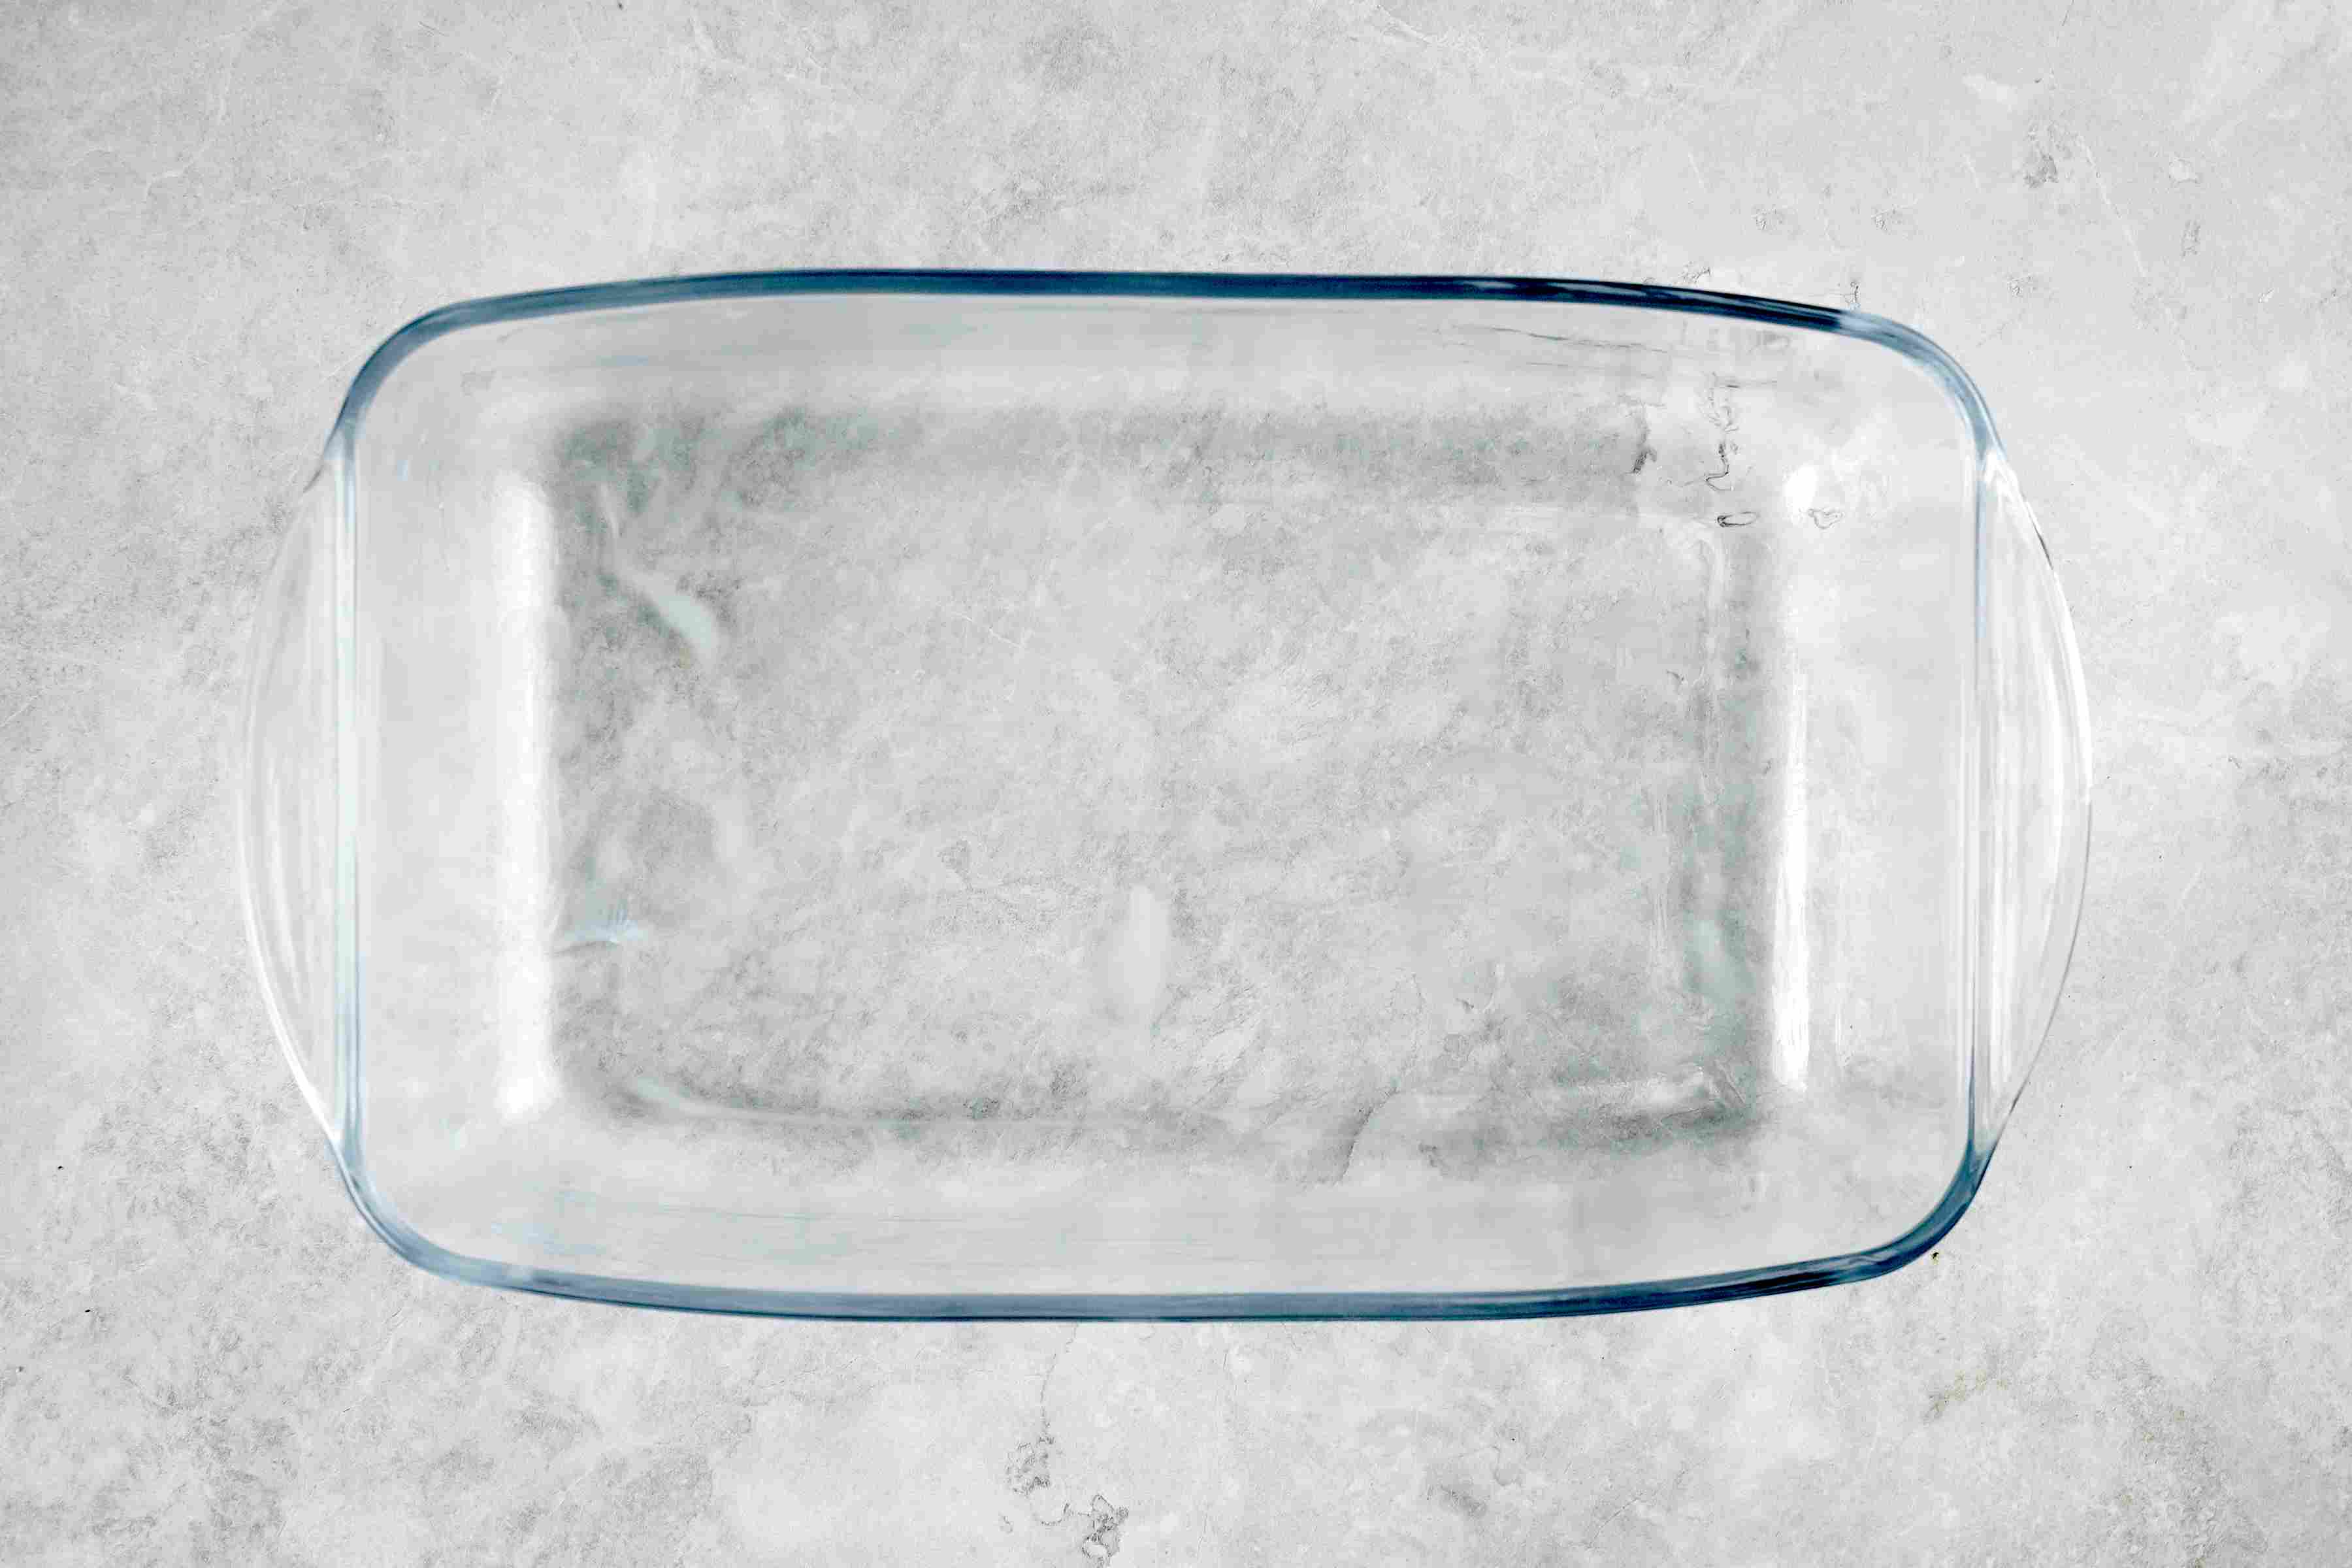 Buttered glass baking dish